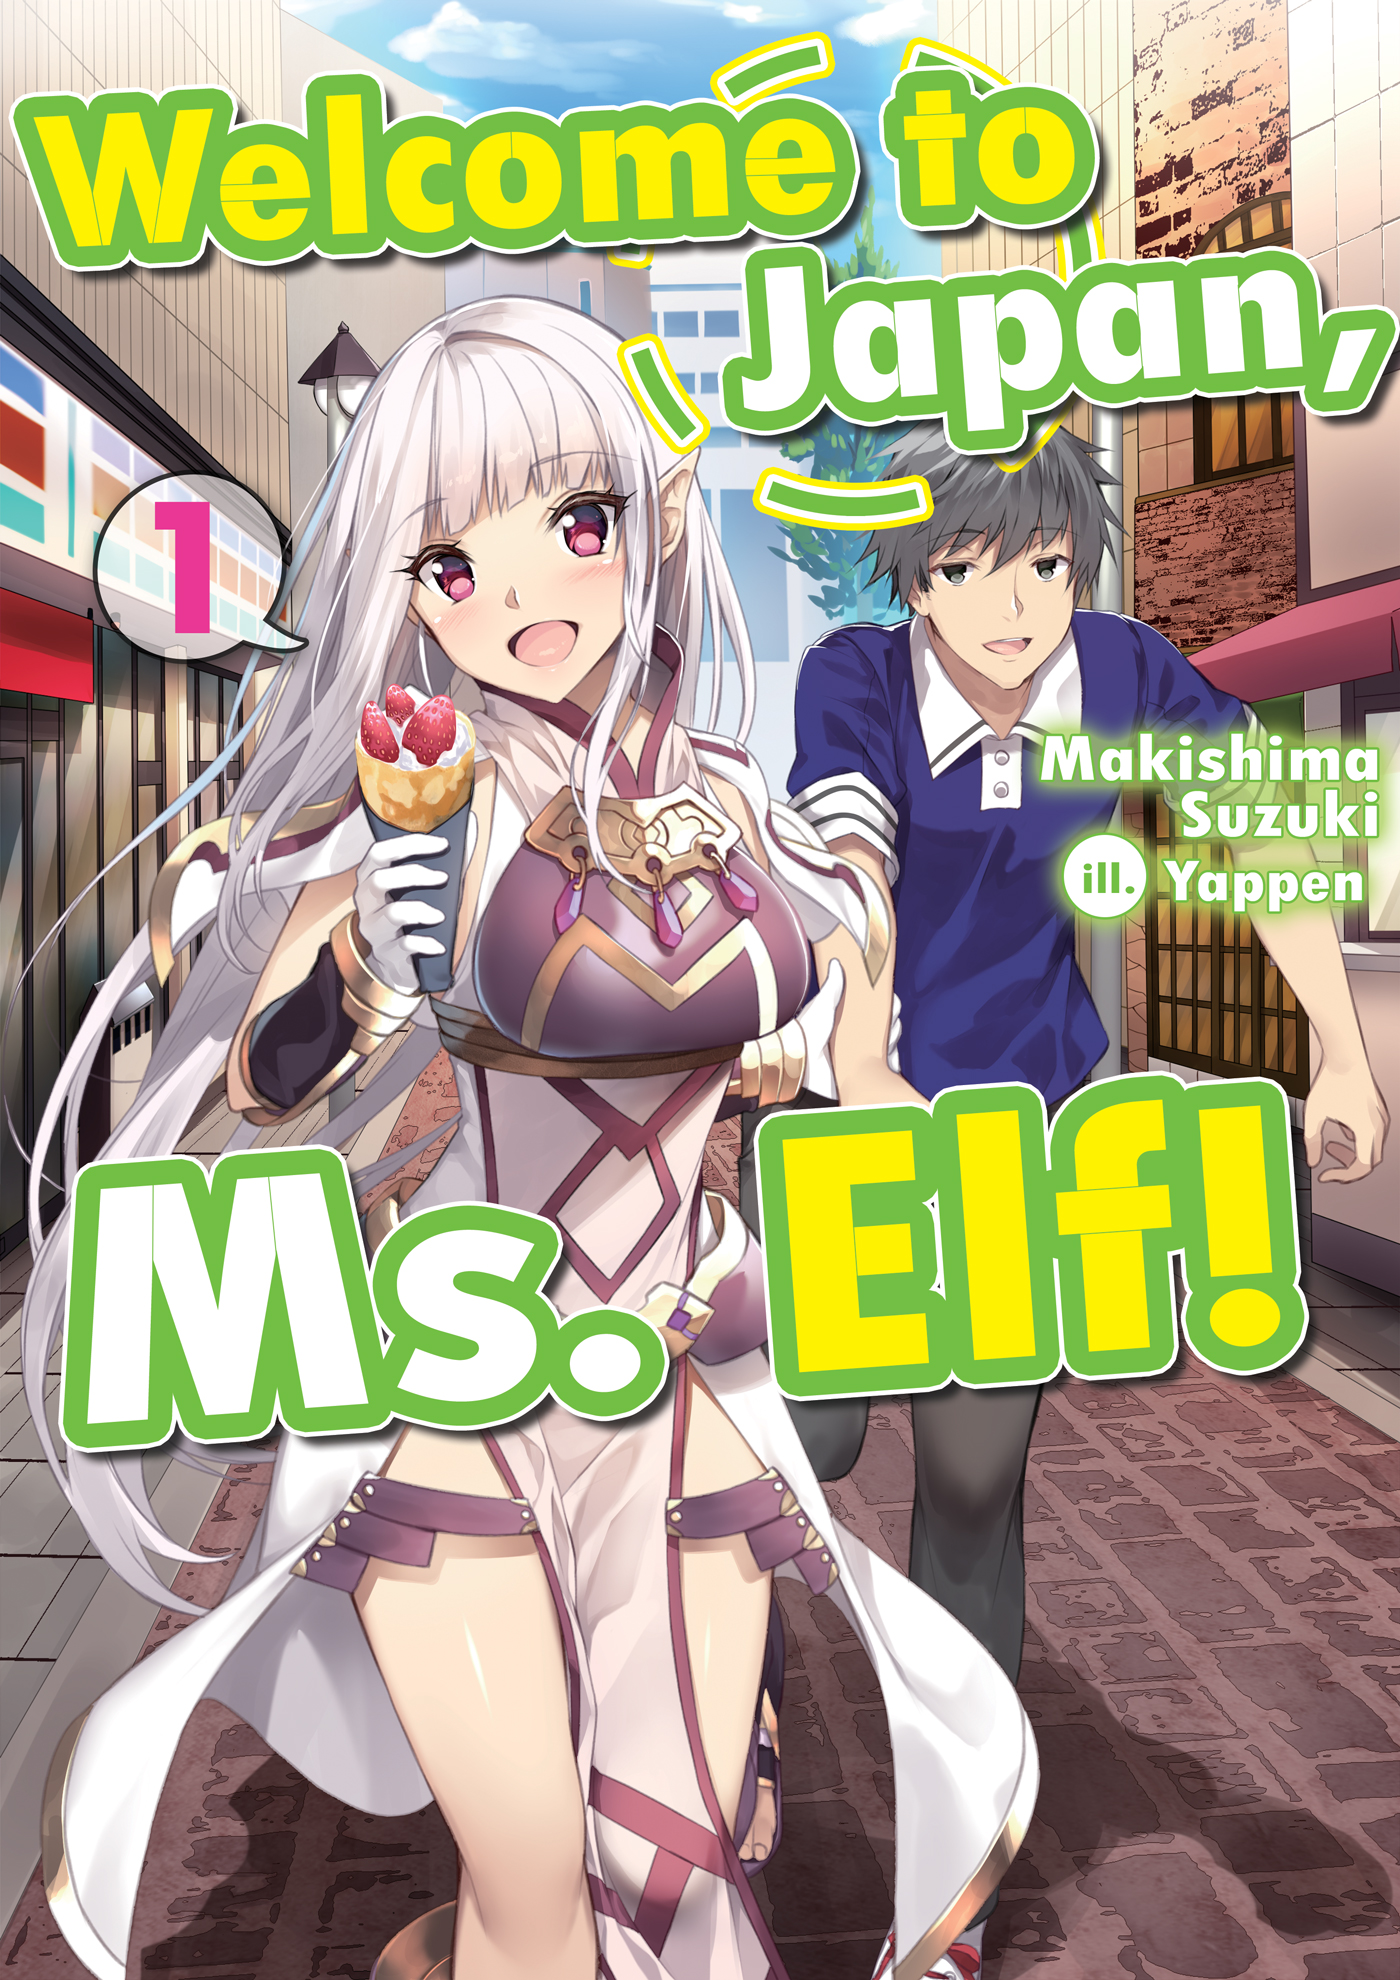 Cover des 1.Bandes von Welcome to Japan, Ms. Elf!